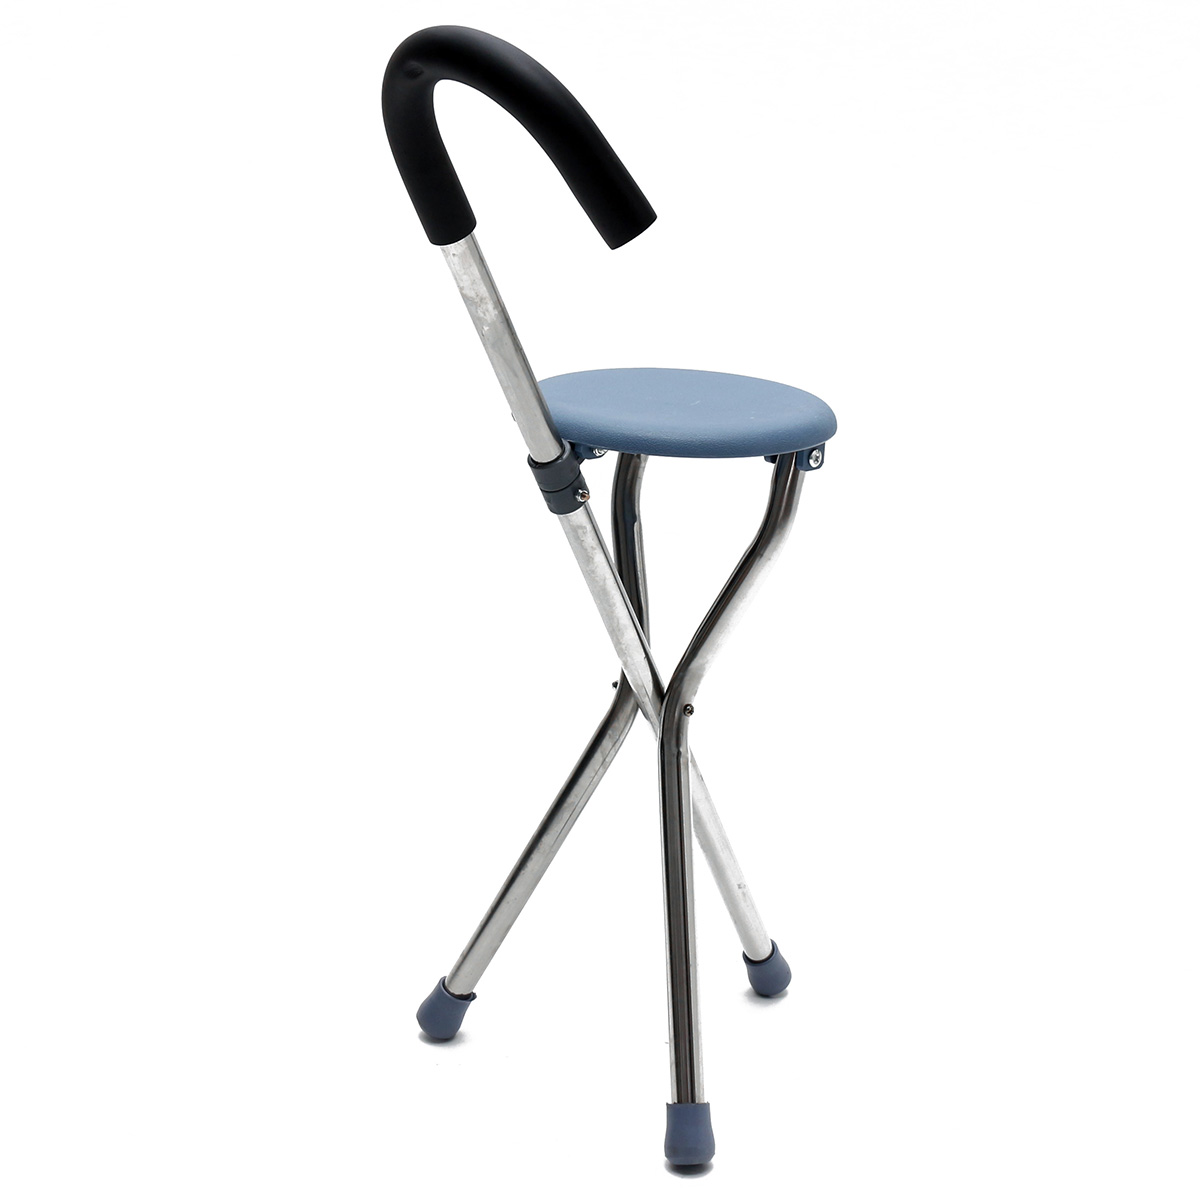 Folding Walking Chair Rest Stool Iron Walking Stick Plastic Seat Non Slip Tripods Cane For Elder Outdoor Hiking Climbing Crutch